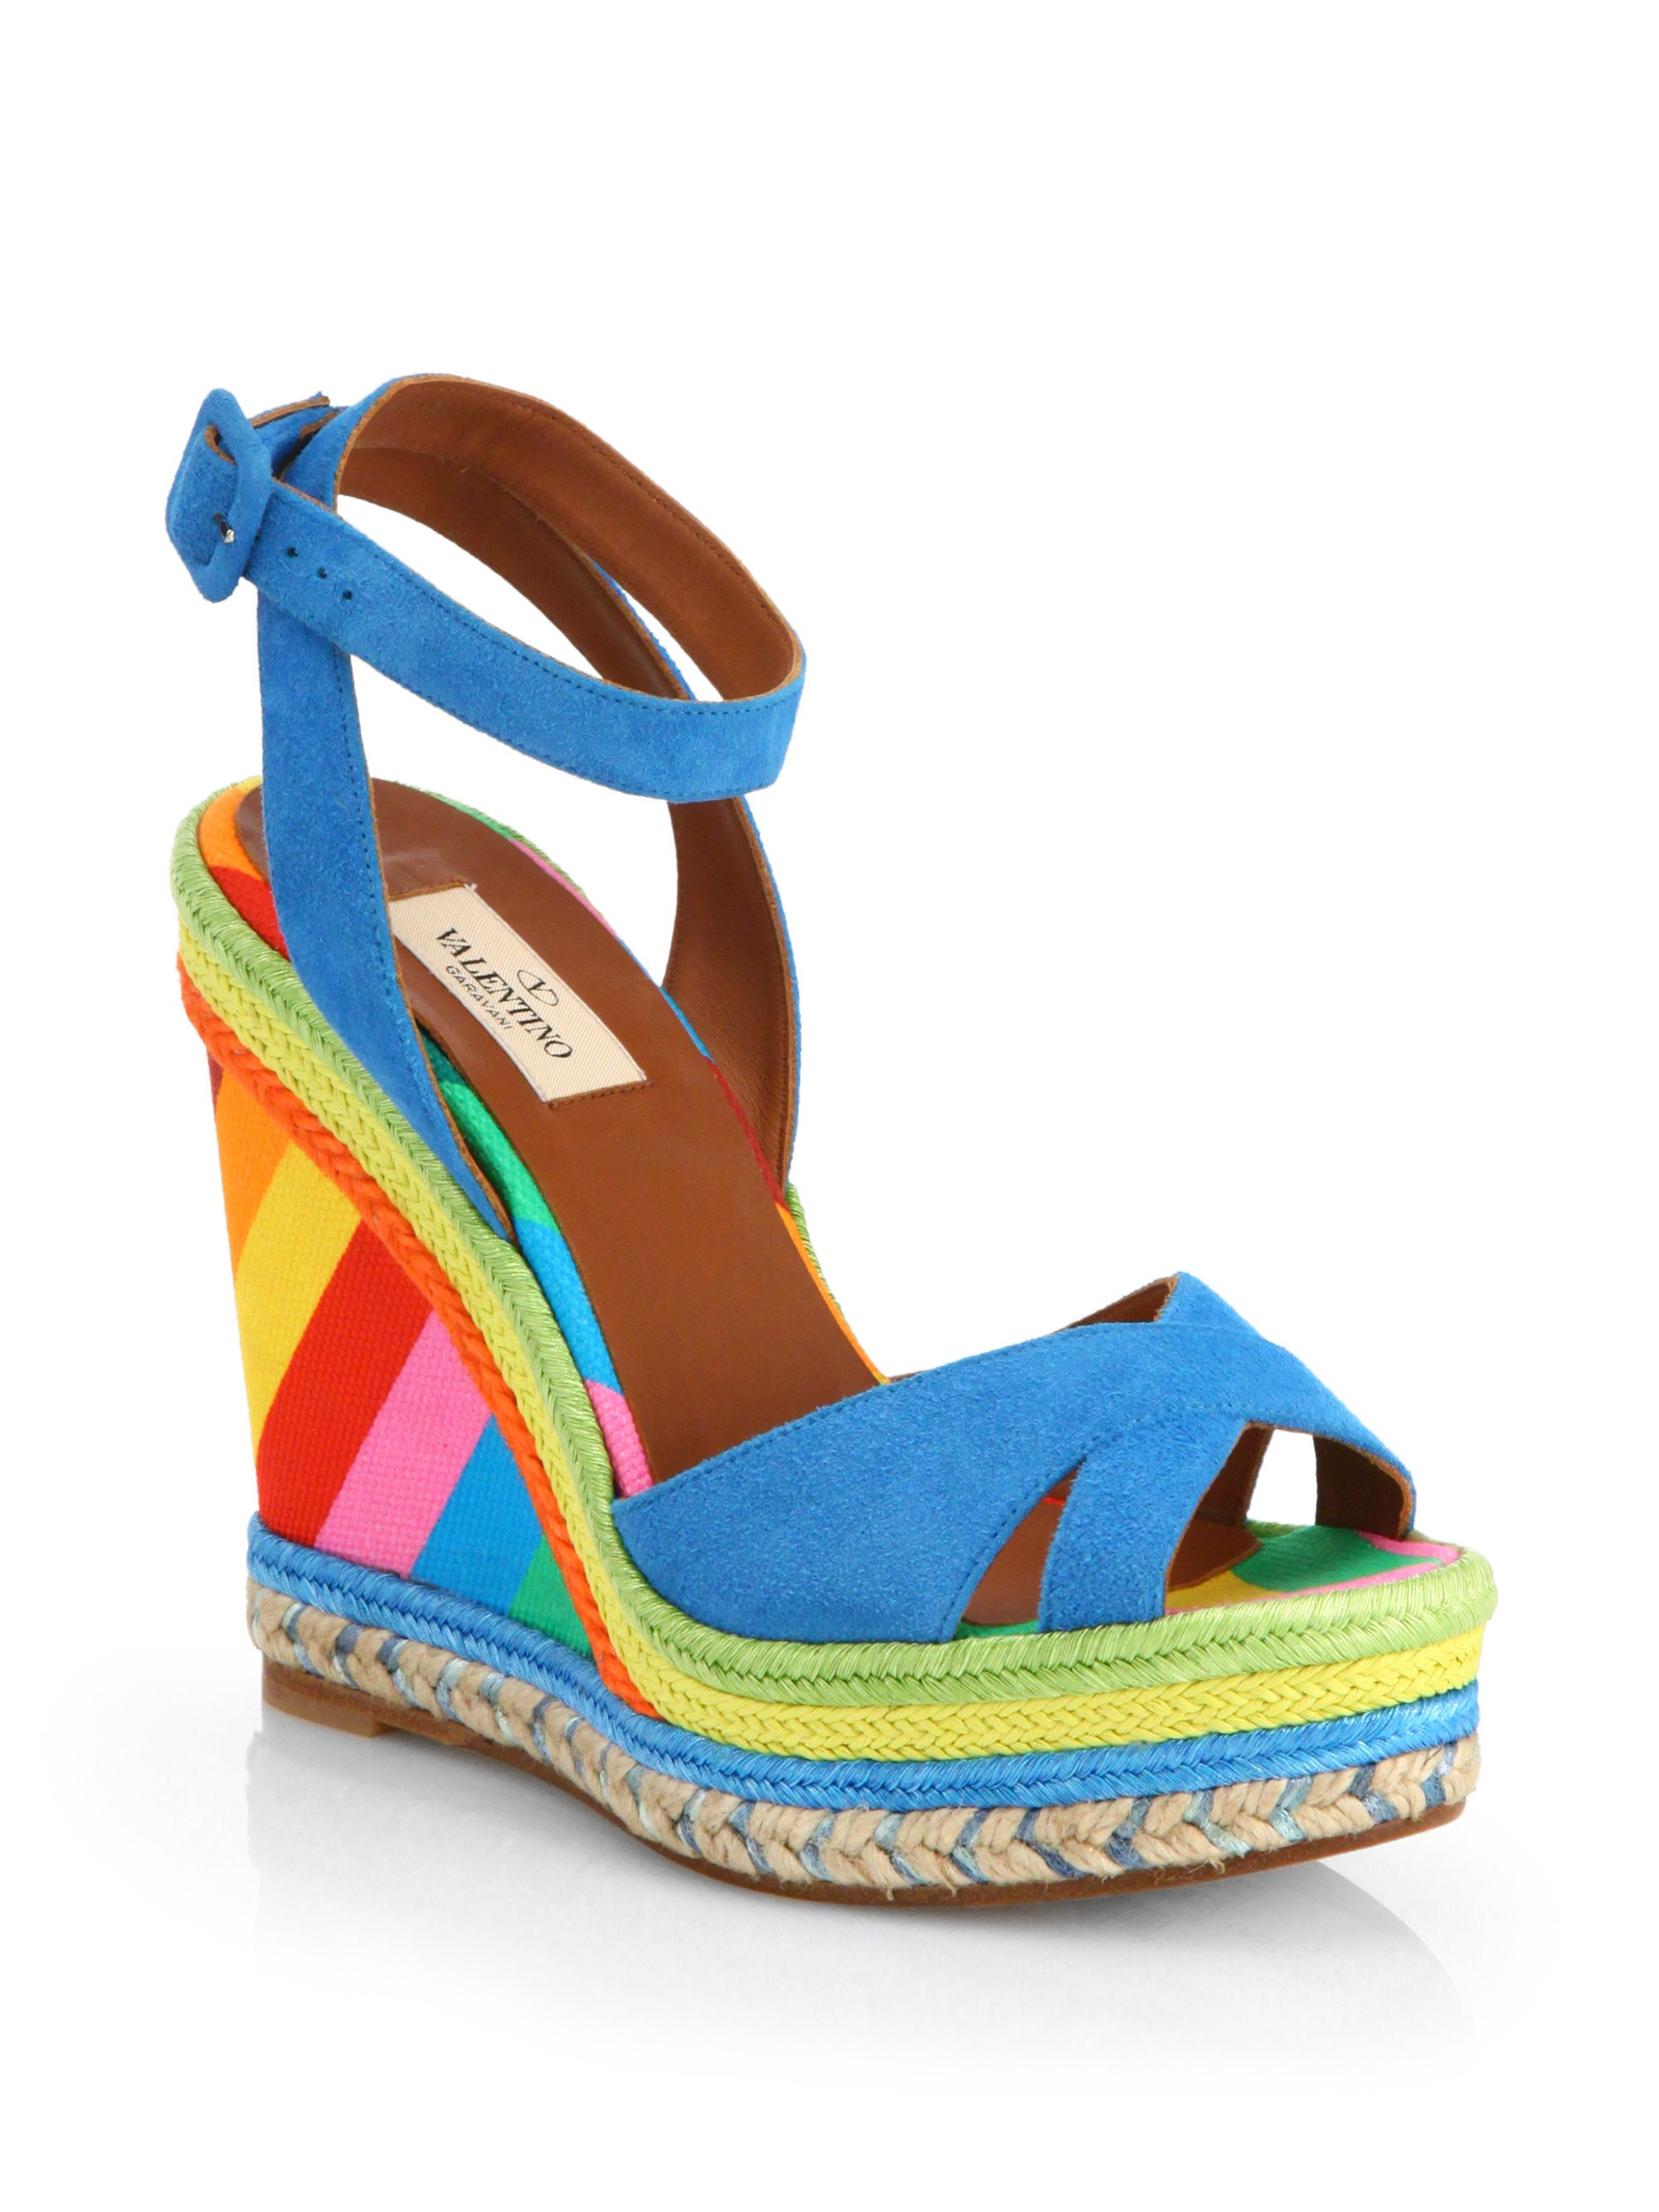 Valentino 1973 Wedge Sandals discount factory outlet clearance reliable 8C59p